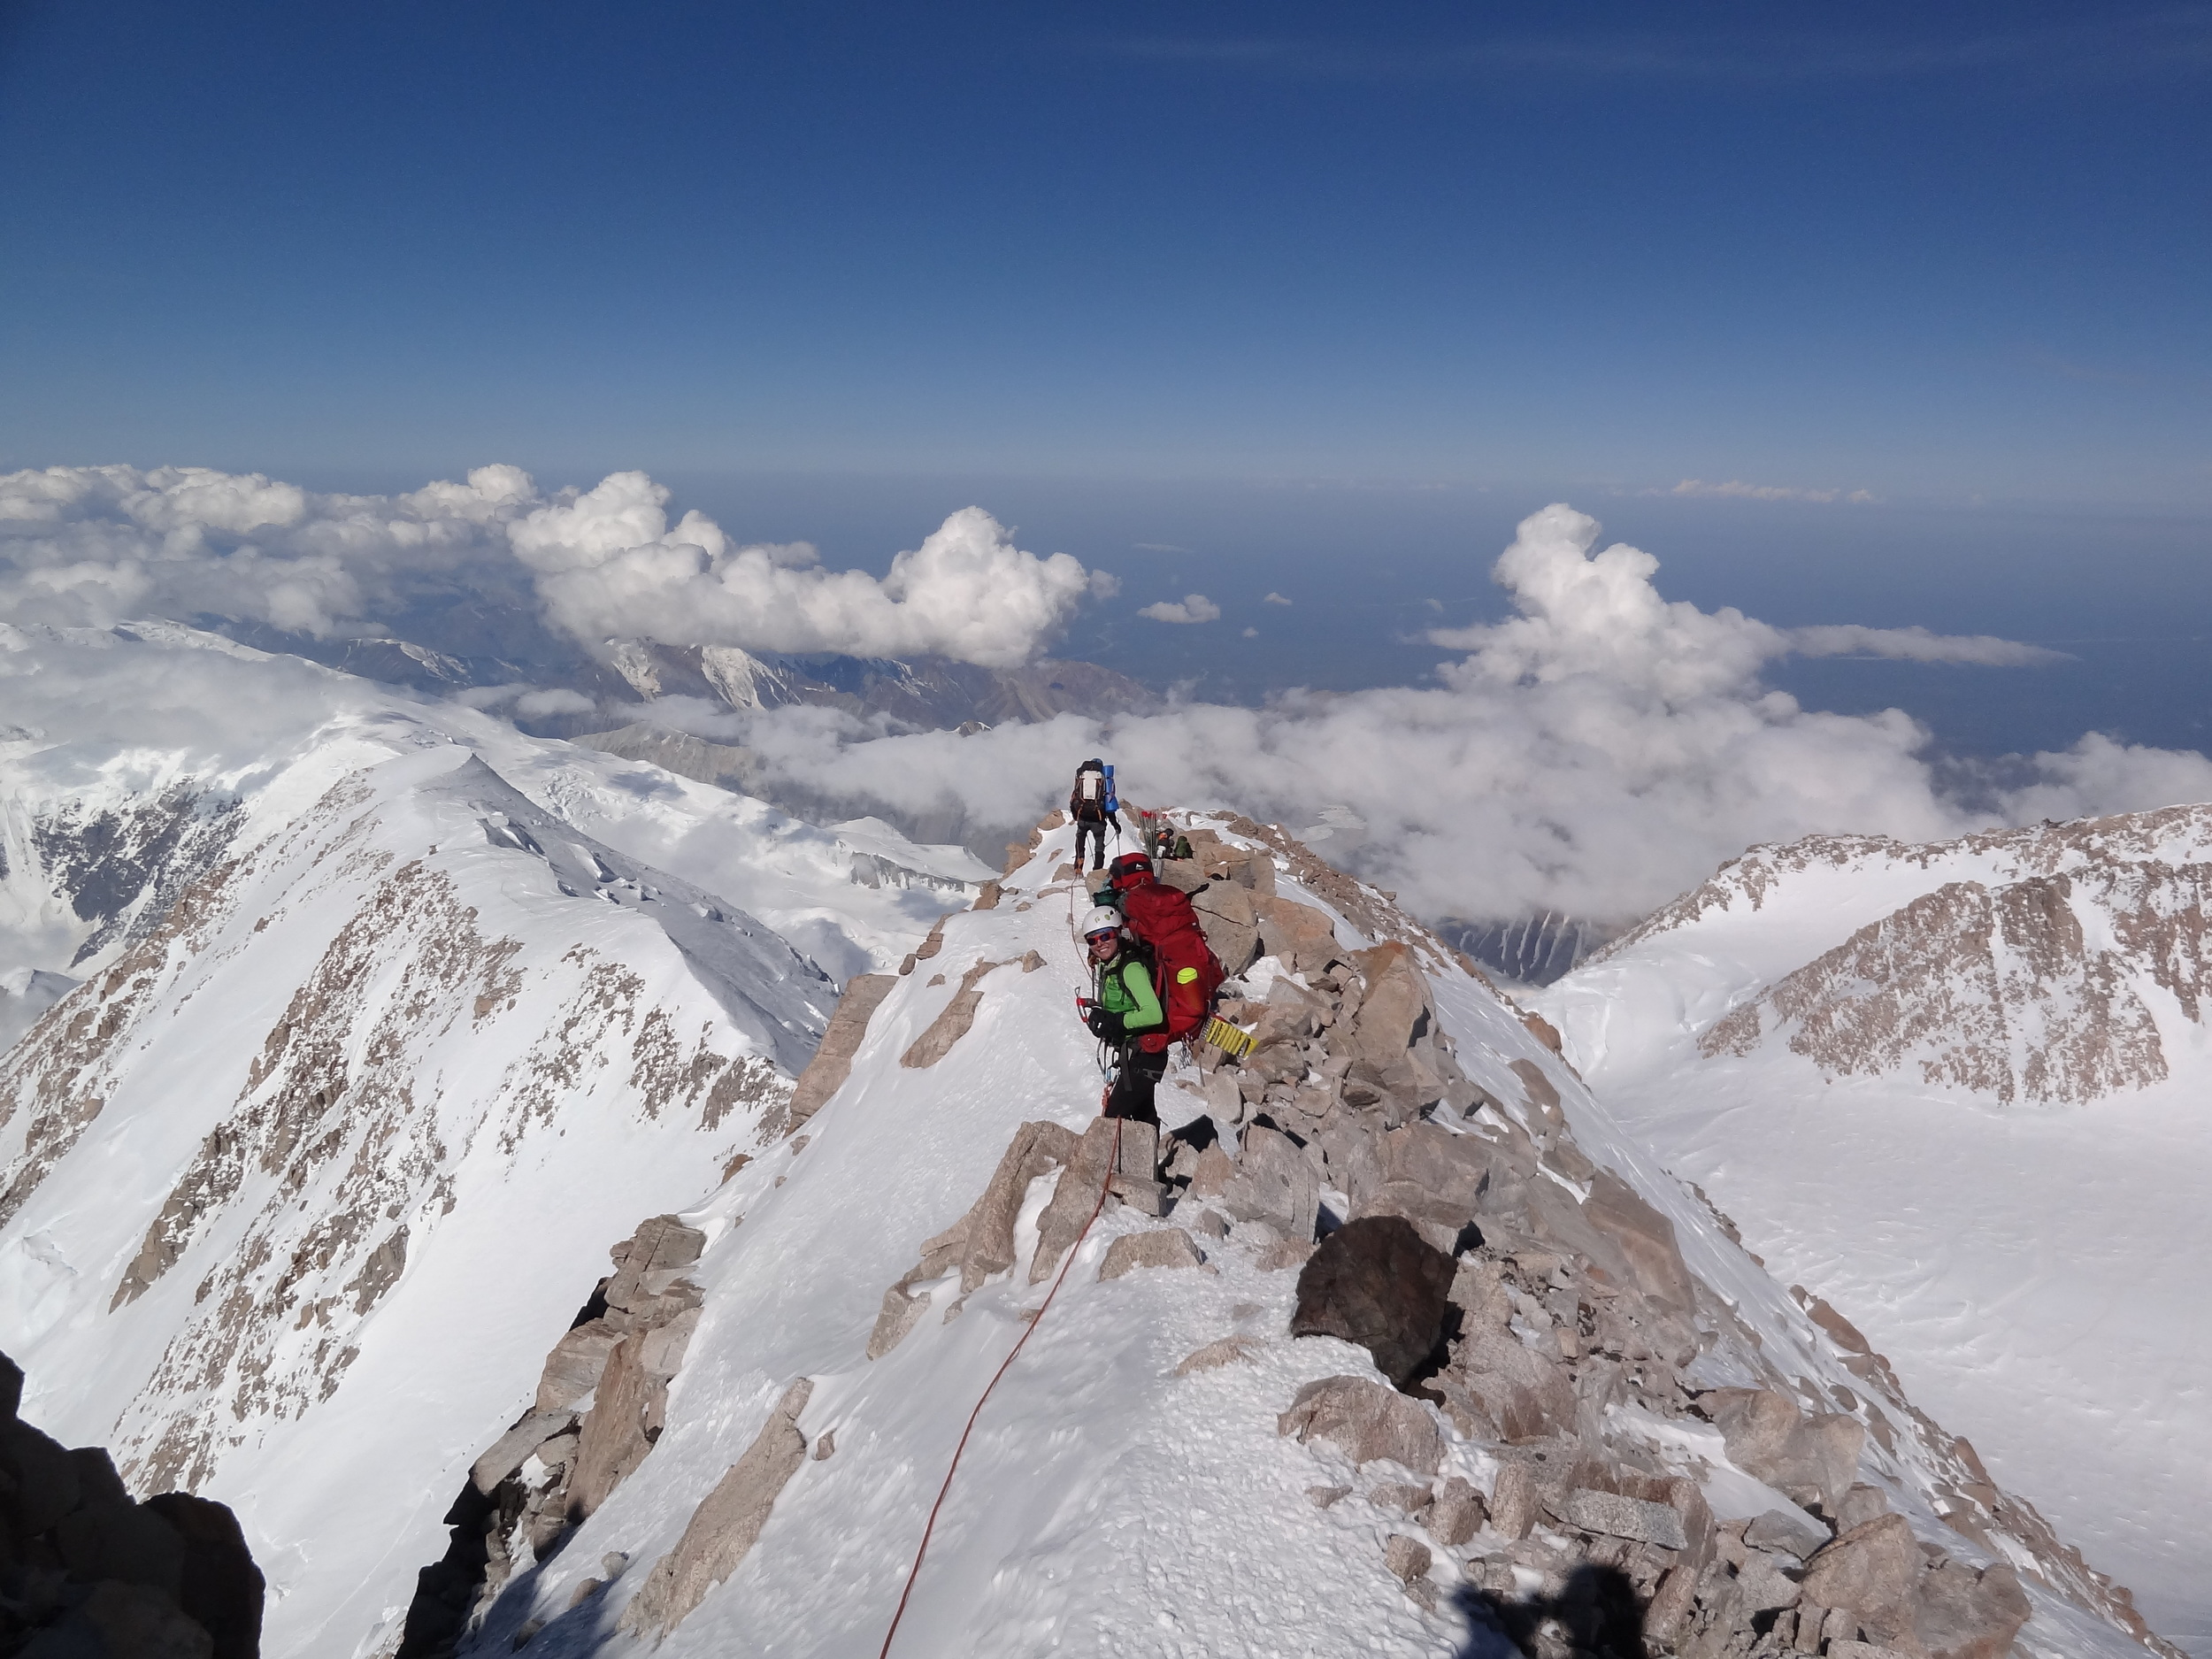 Mountain climbing, like life and daily job demands, is often a balancing act.